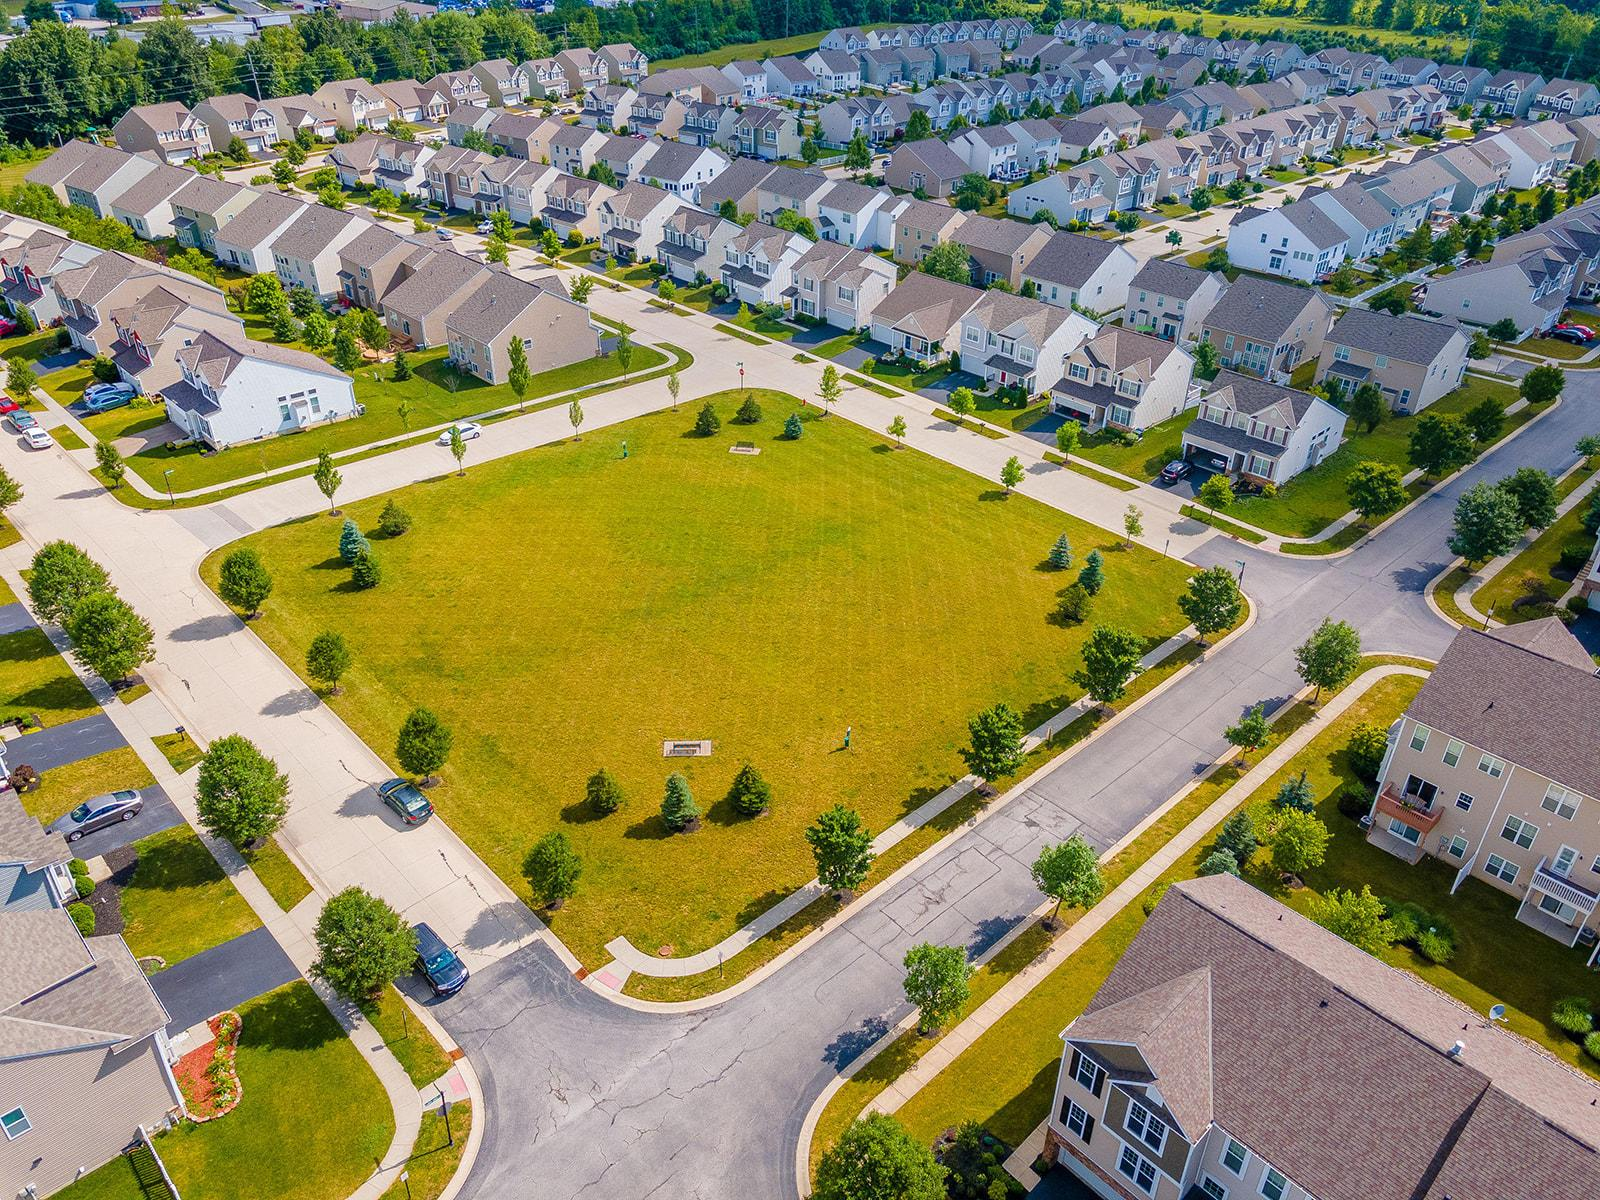 Green Space Aerial